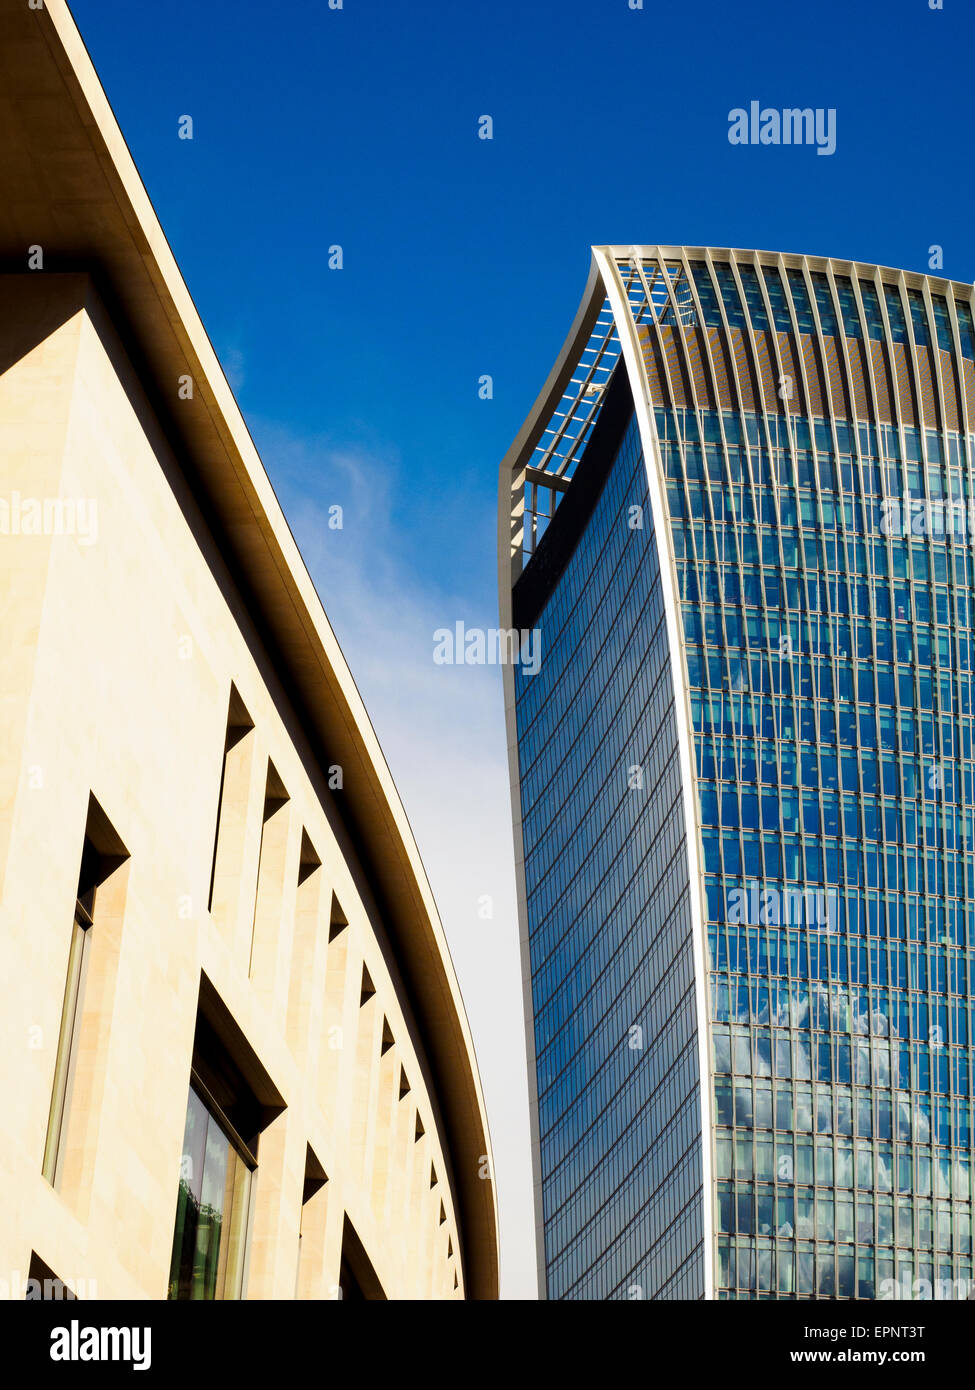 The walkie talkie building in 20 Fenchurch Street - London, England - Stock Image